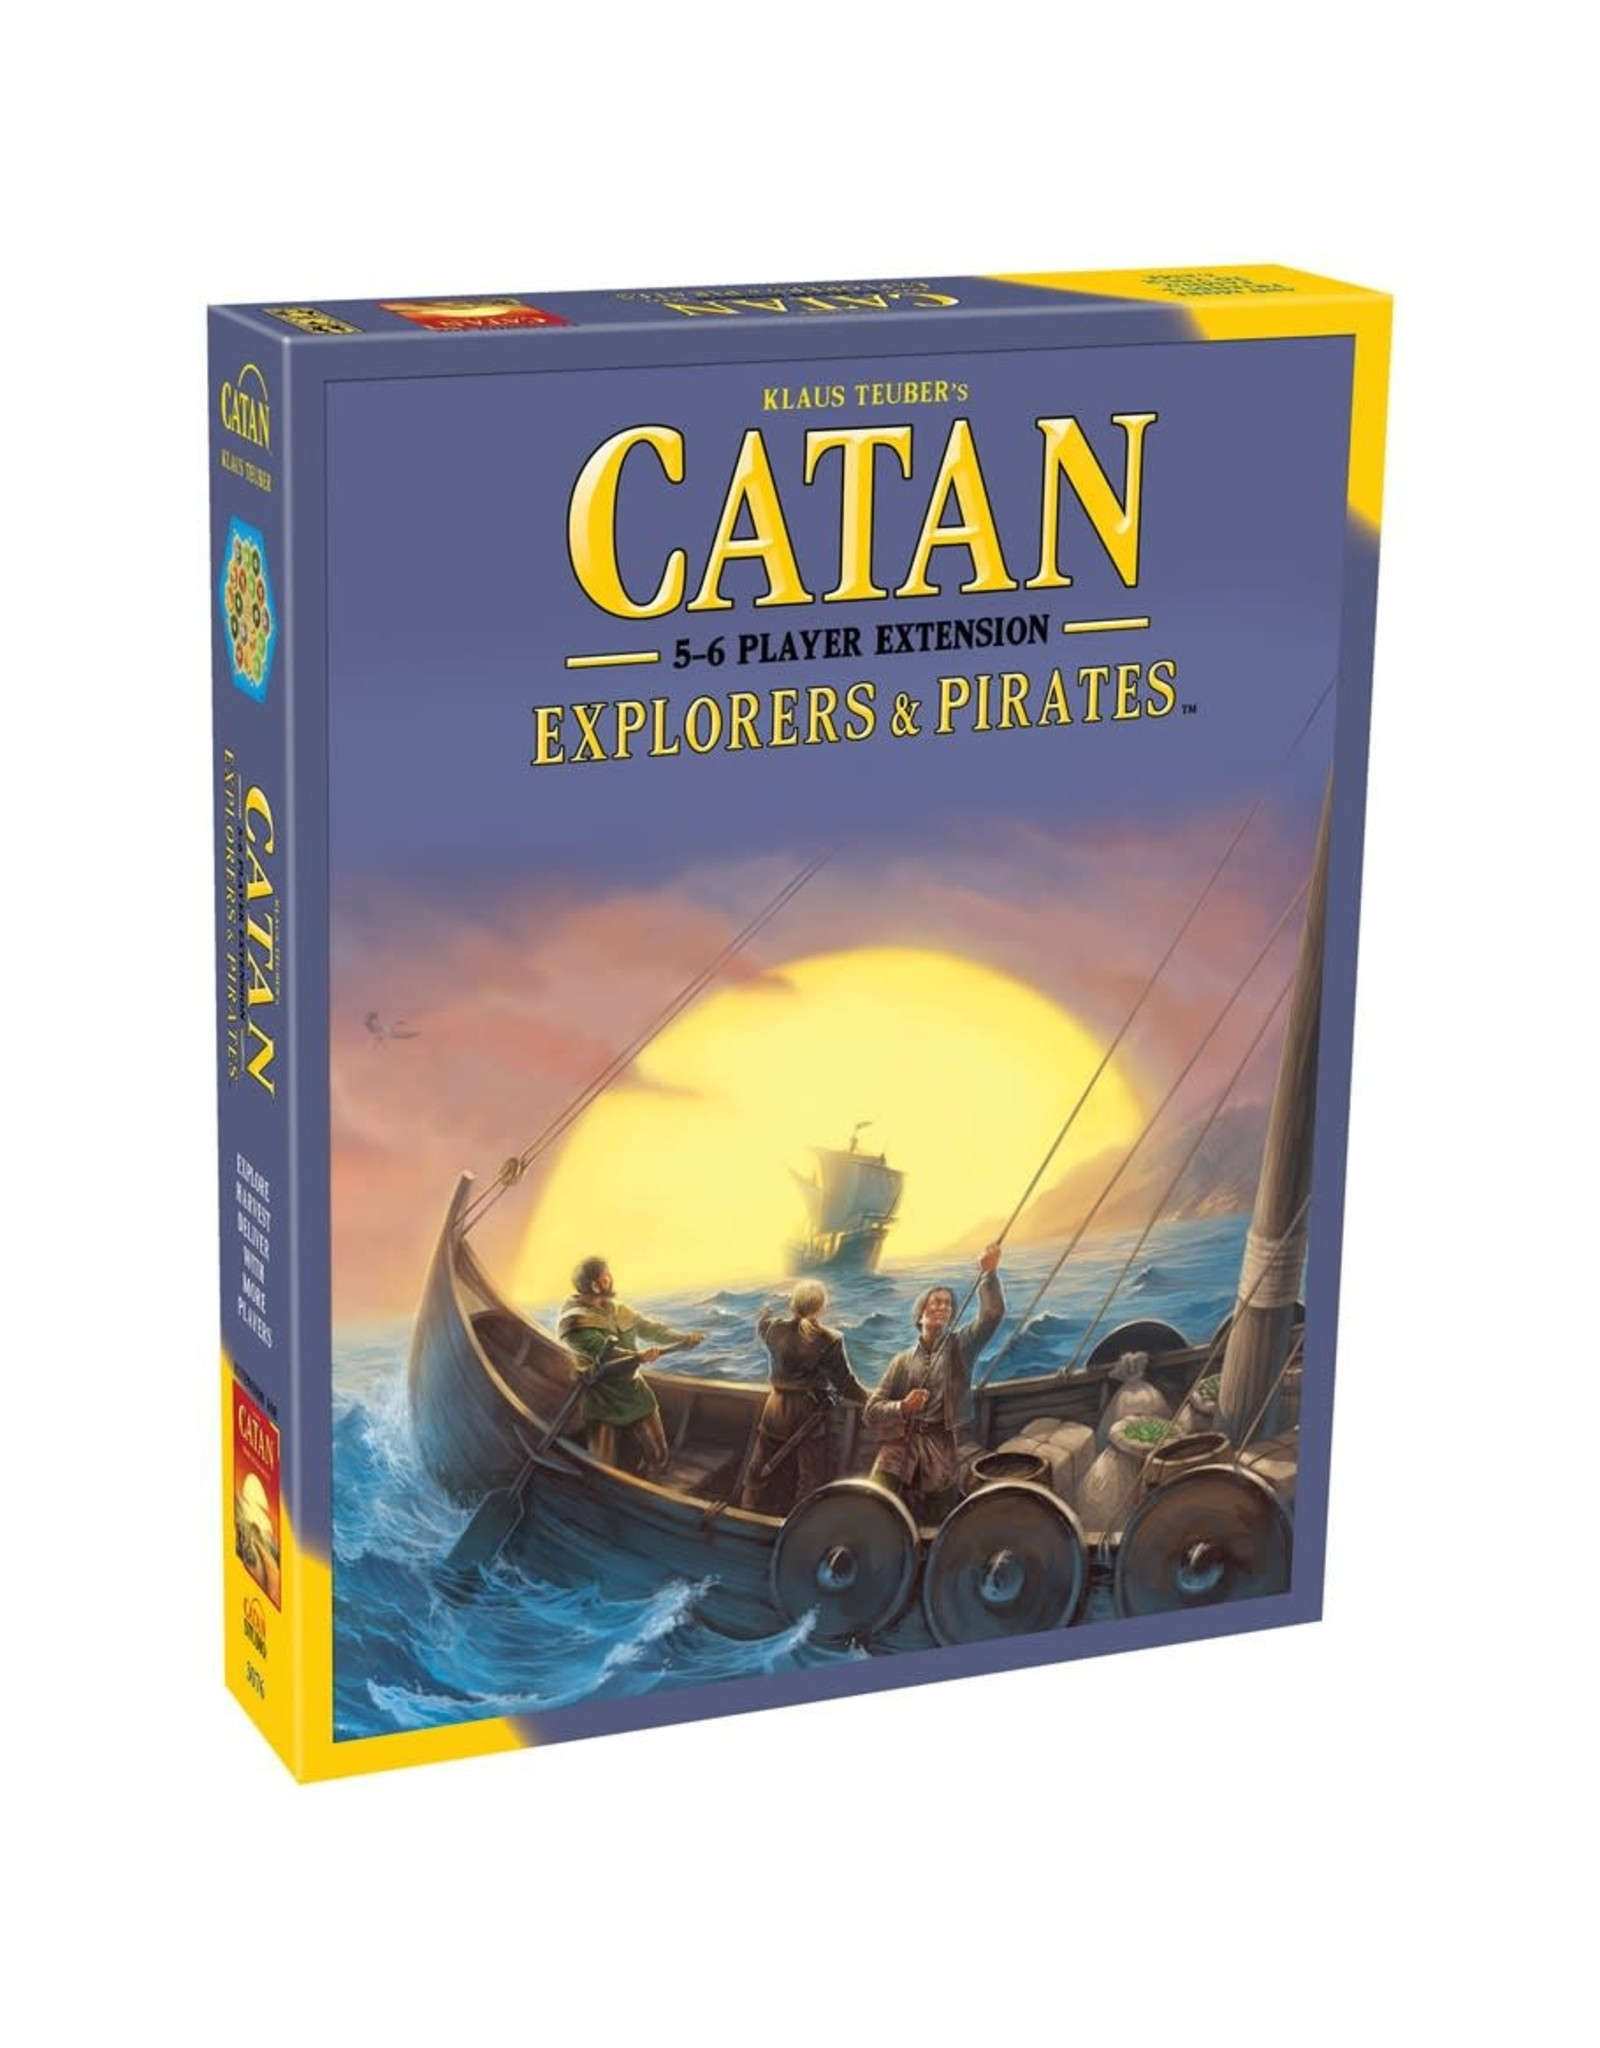 Settlers of Catan Catan Ext: Explorers & Pirates 5-6 Player Expansion